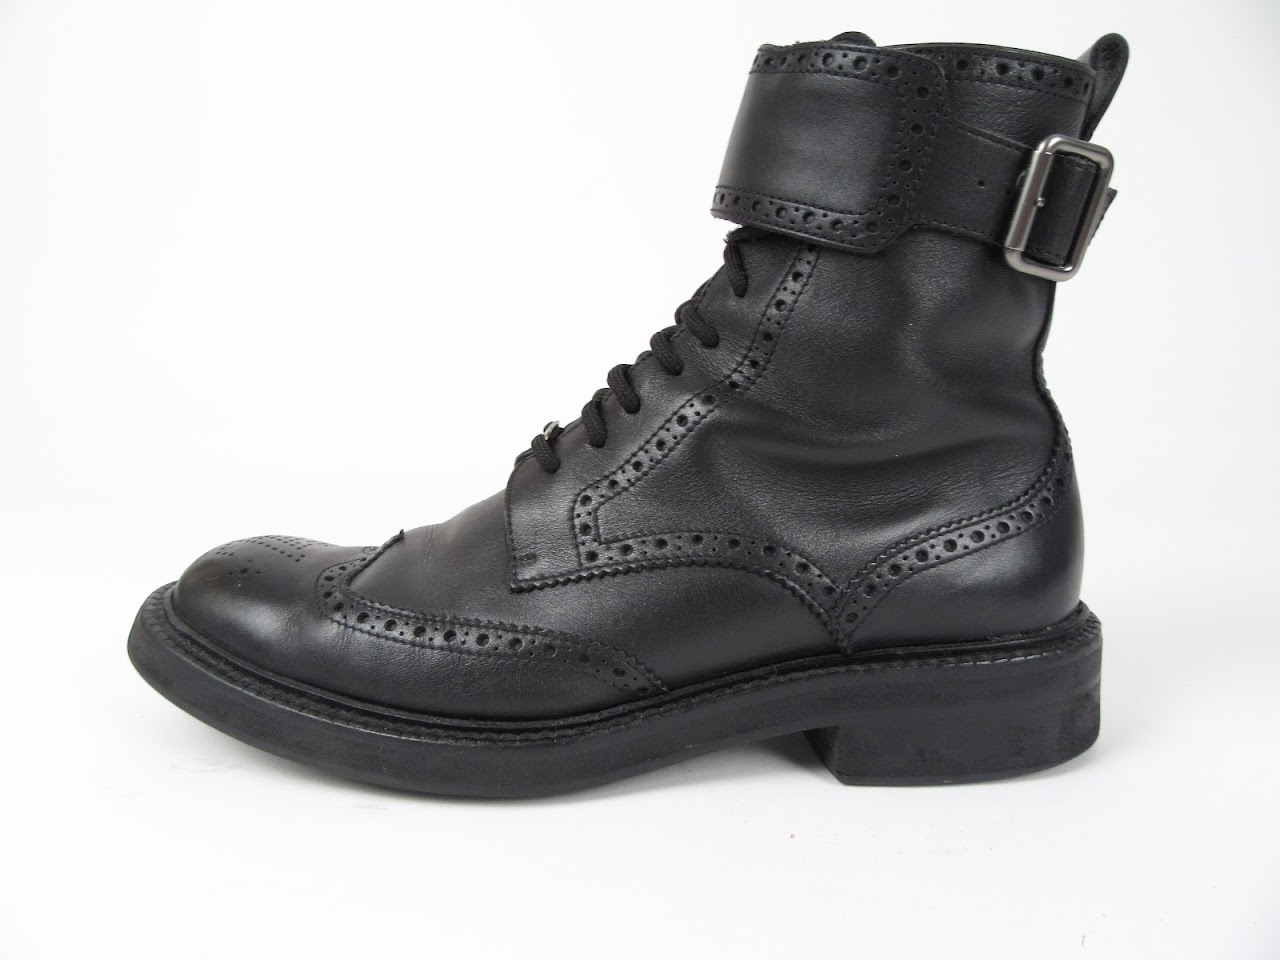 Louis Vuitton Black Leather Ankle Brogues